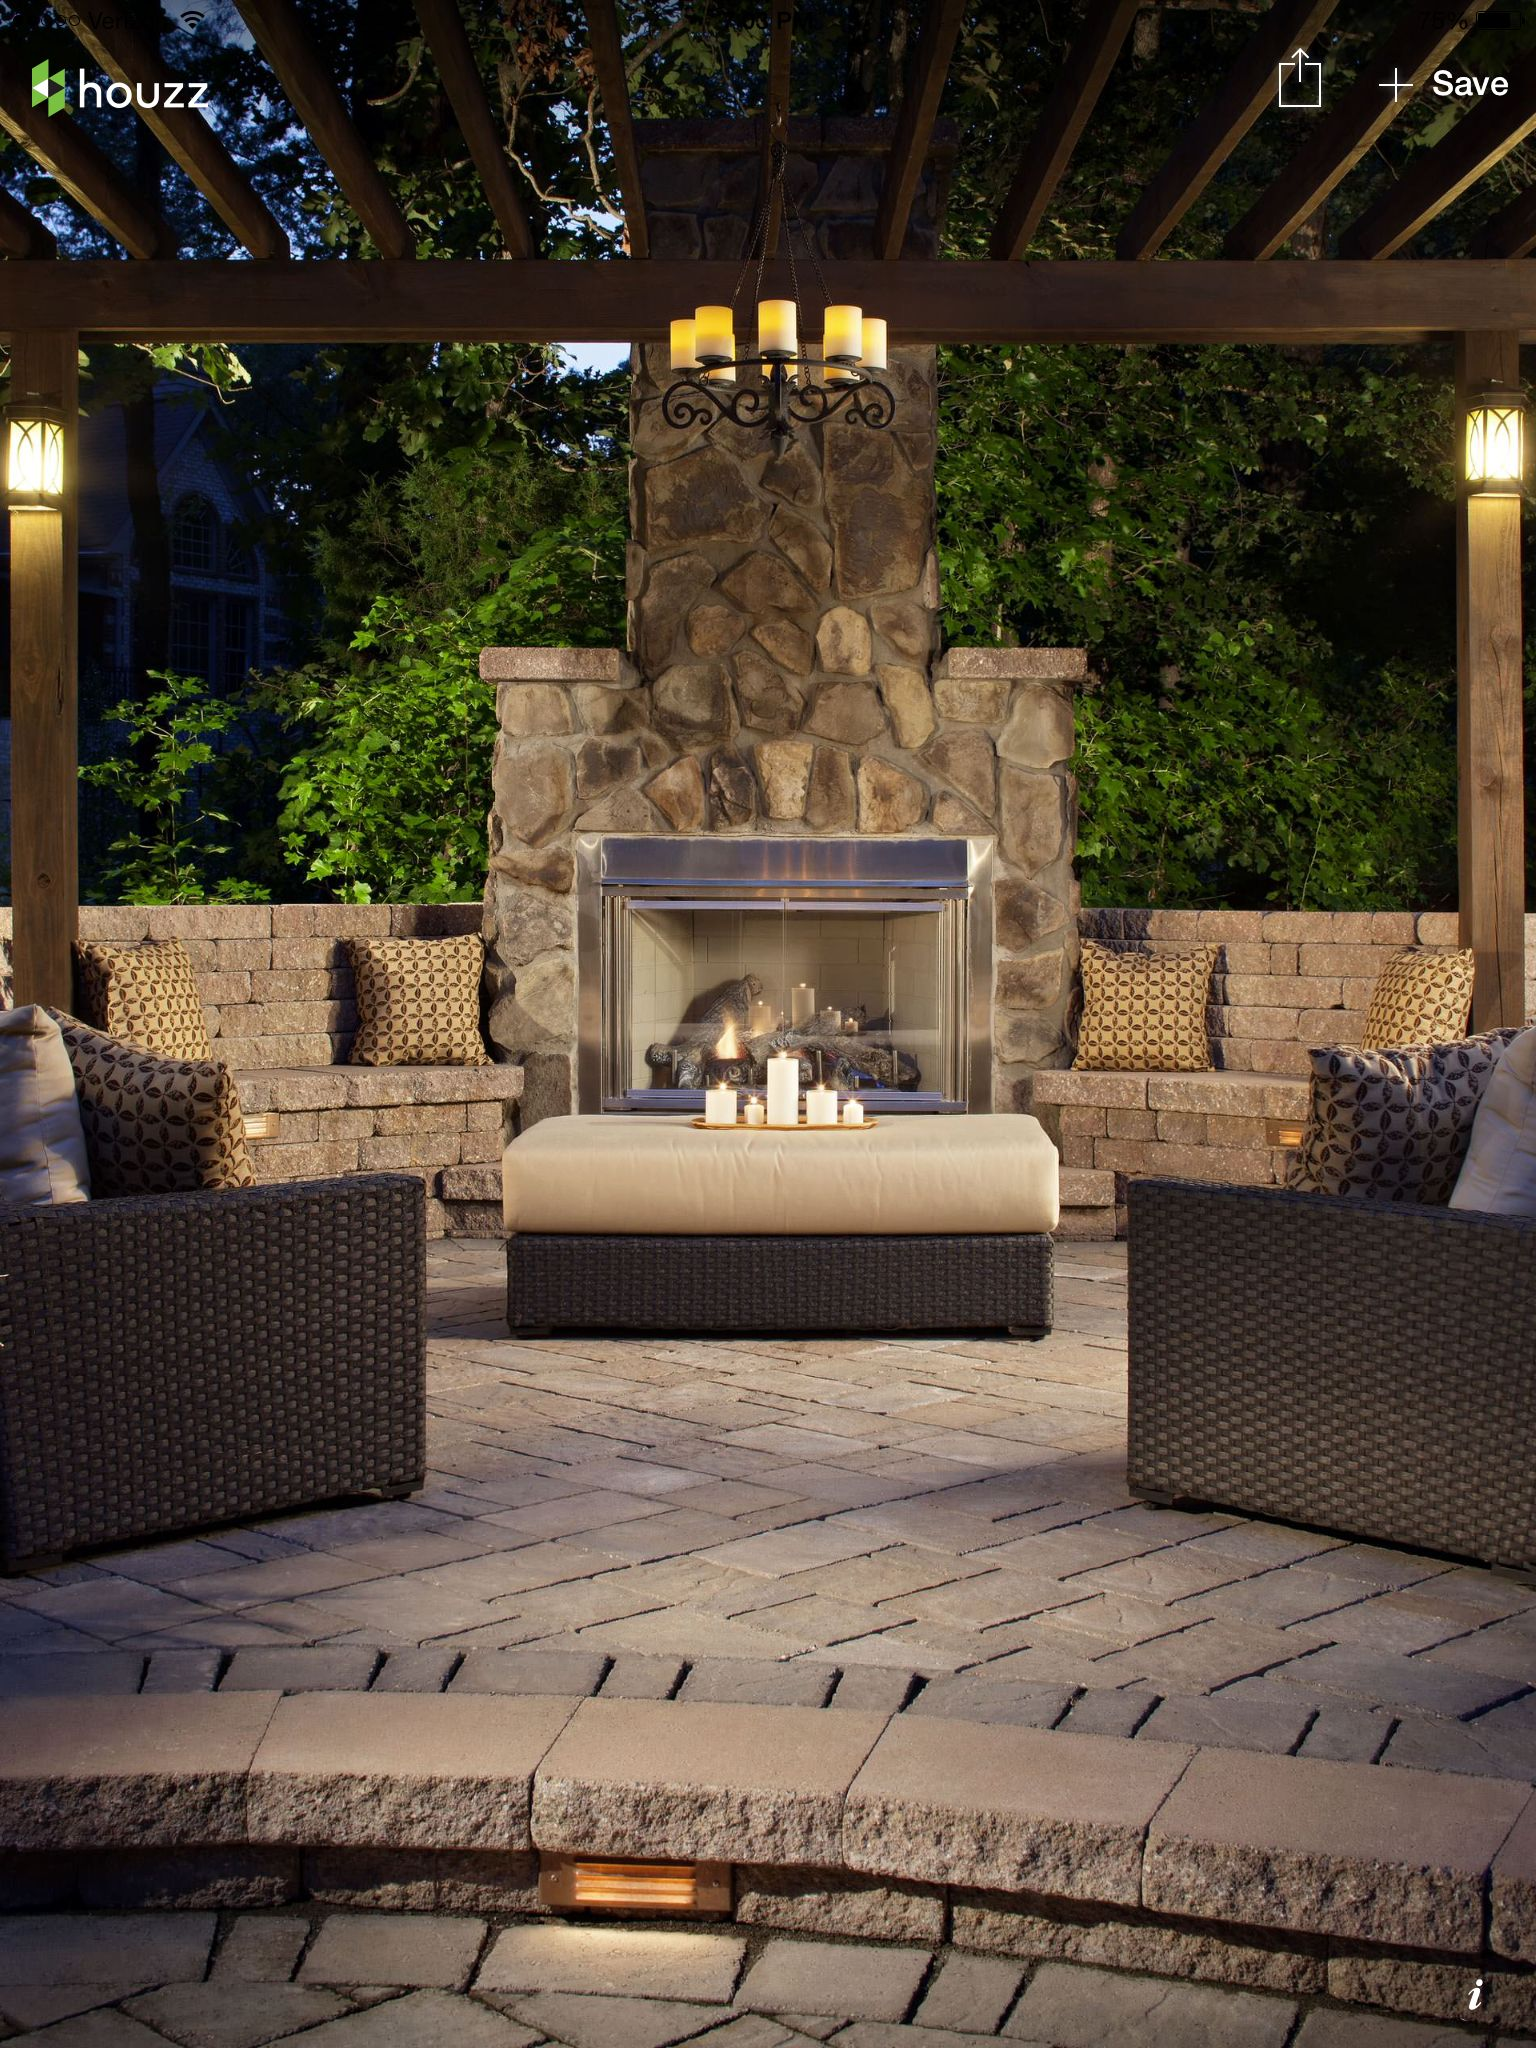 Beautiful outdoor environment Outdoor Pool Fireplace in